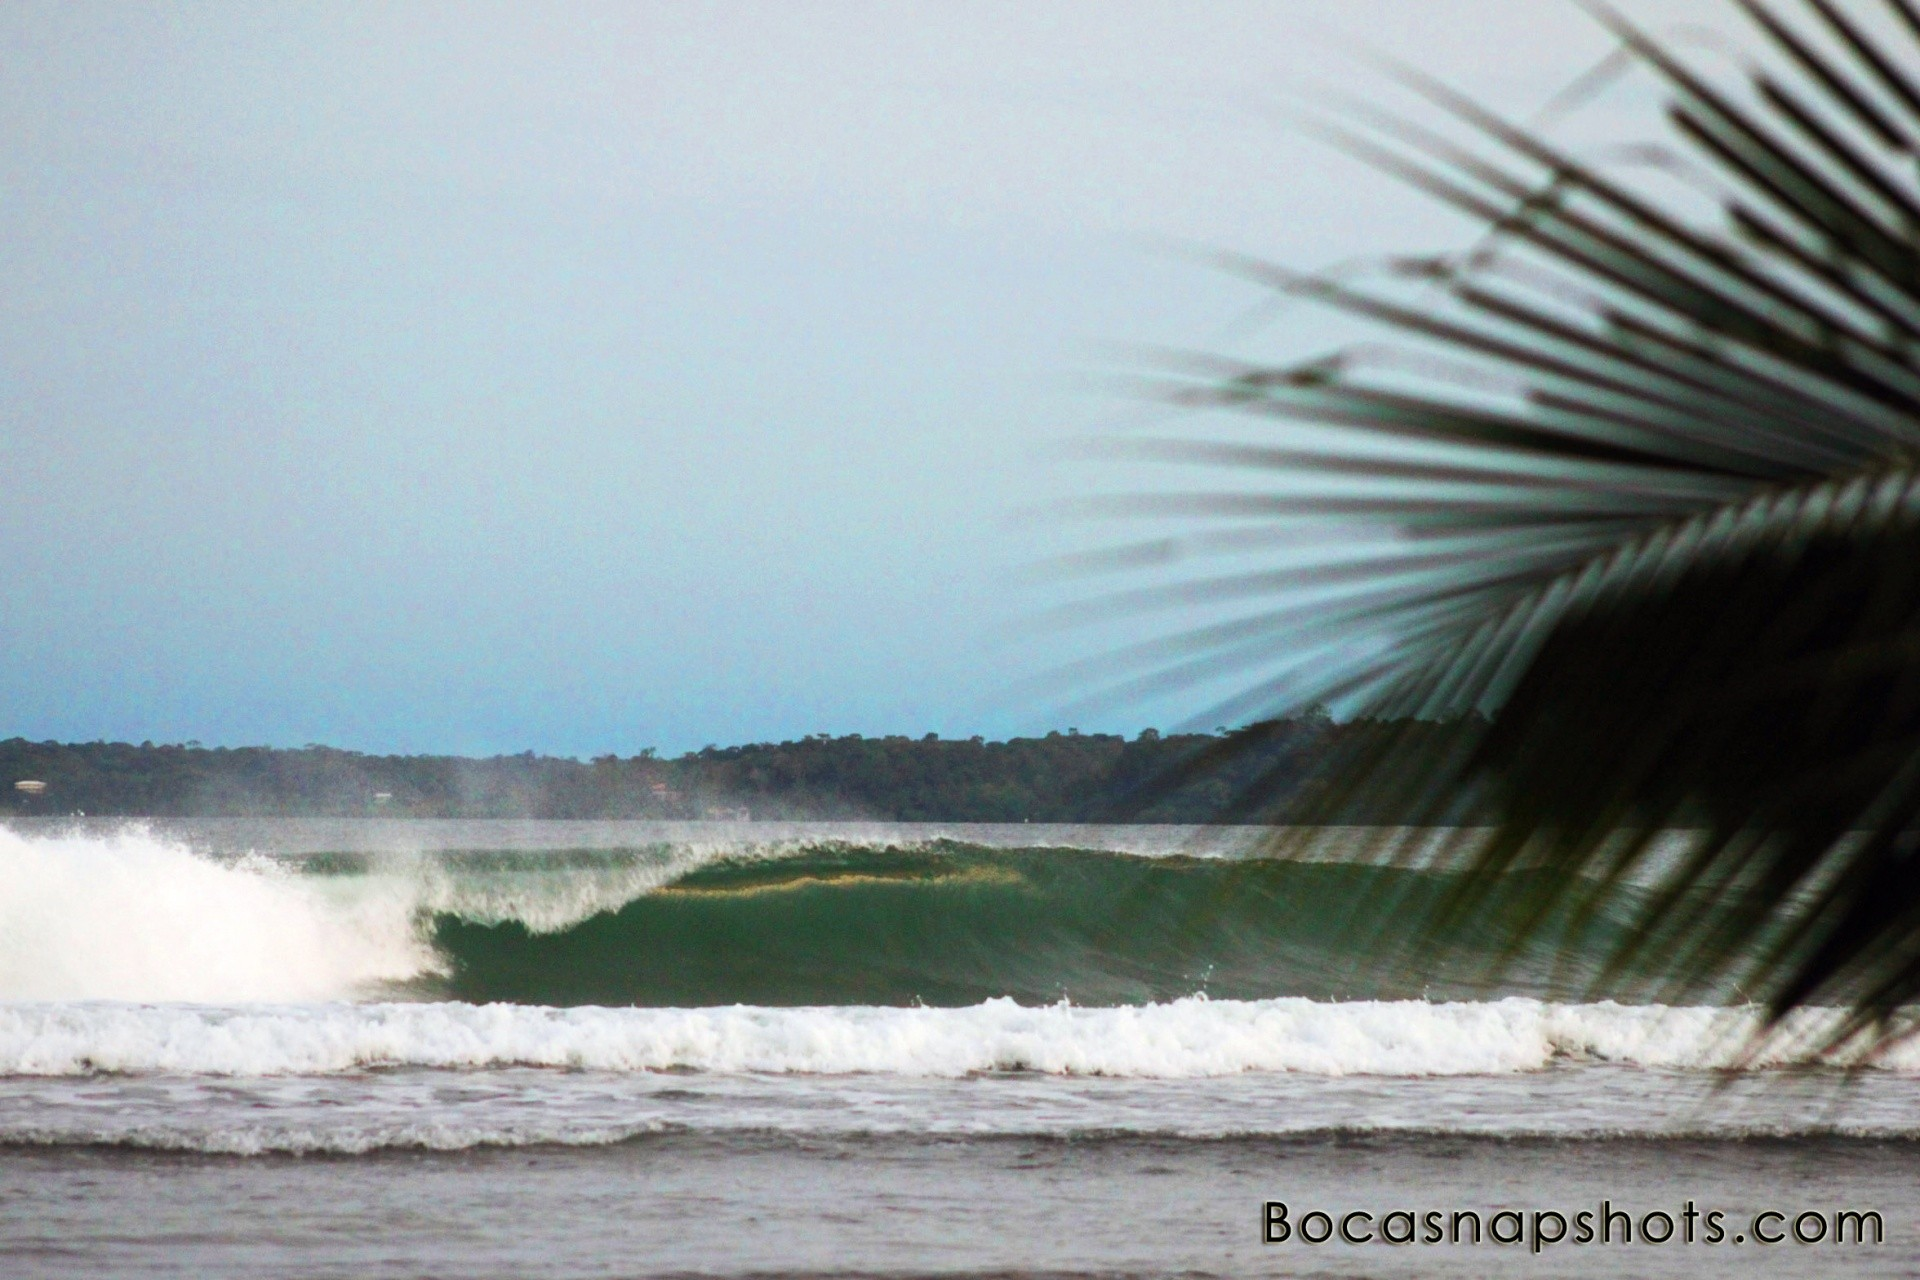 bocasnapshots's photo of Careneros